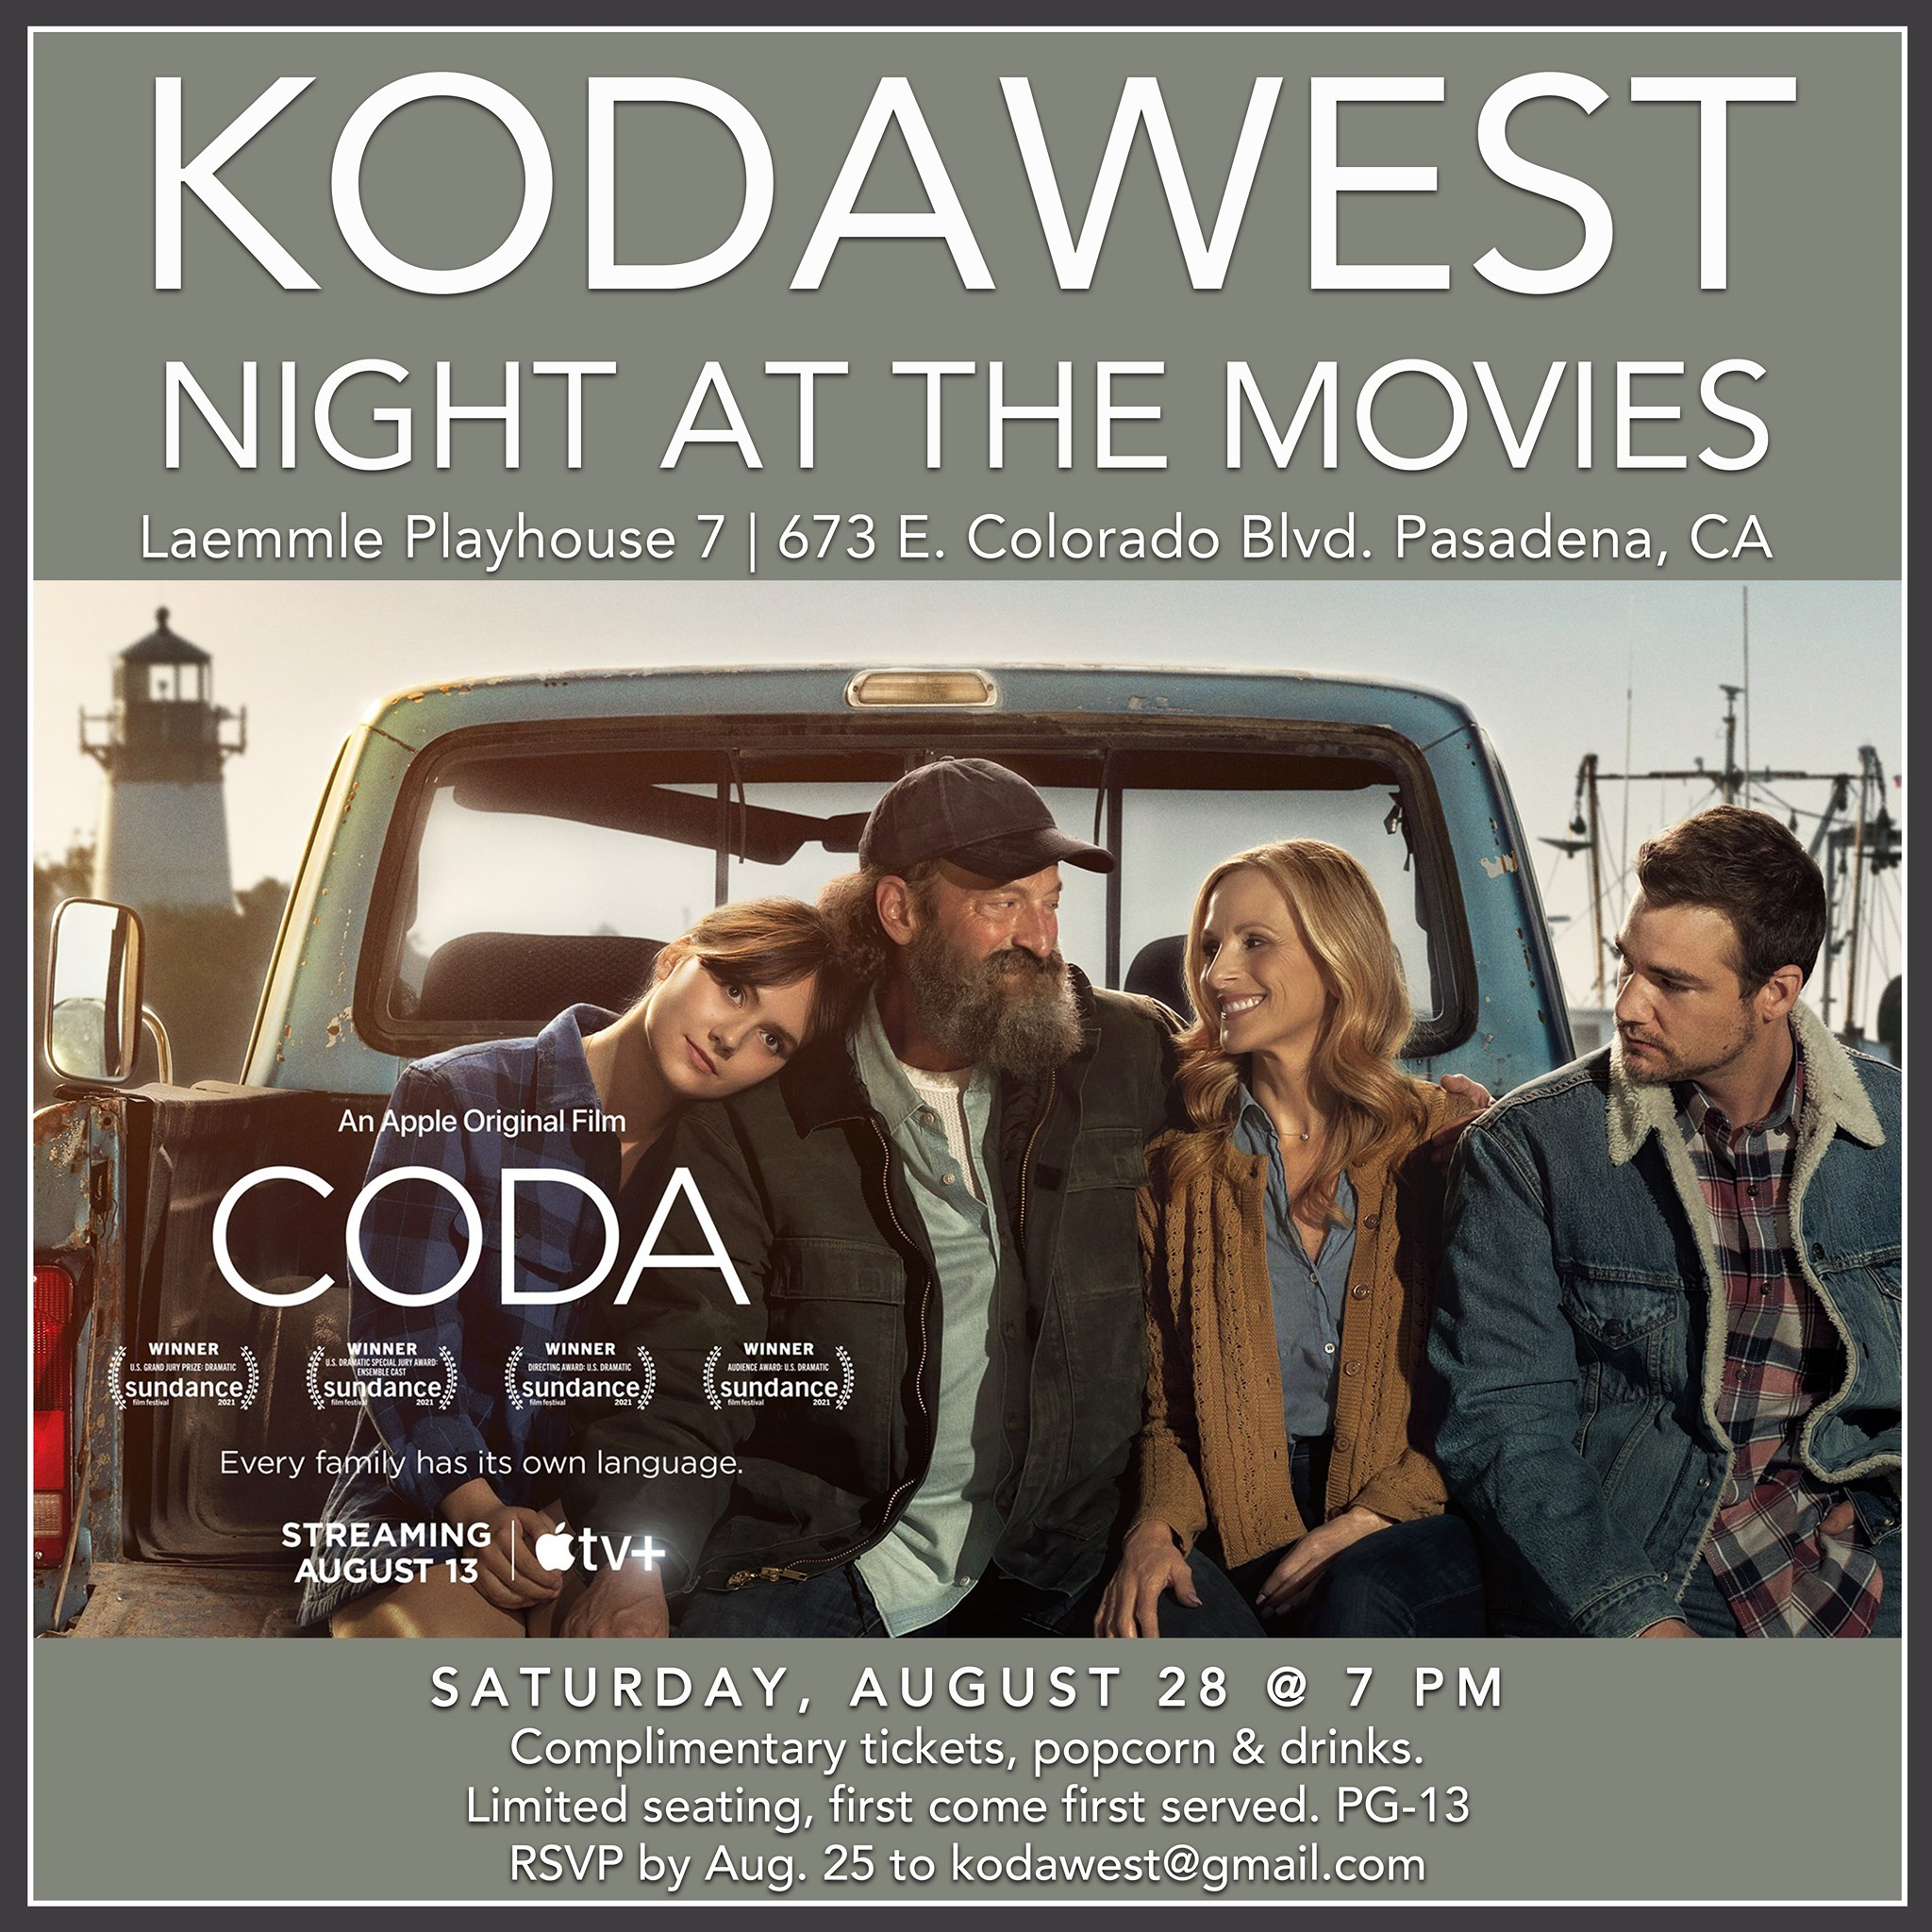 KODAWest invites you to a FREE screening of the movie CODA. Free admission, popcorn and fountain drinks! Saturday, August 28, 2021 @ 7:00 pm *Please check-in no later than 6:30 pm LAEMMLE PLAYHOUSE 7 673 E. COLORADO BLVD. PASADENA, CA 91101